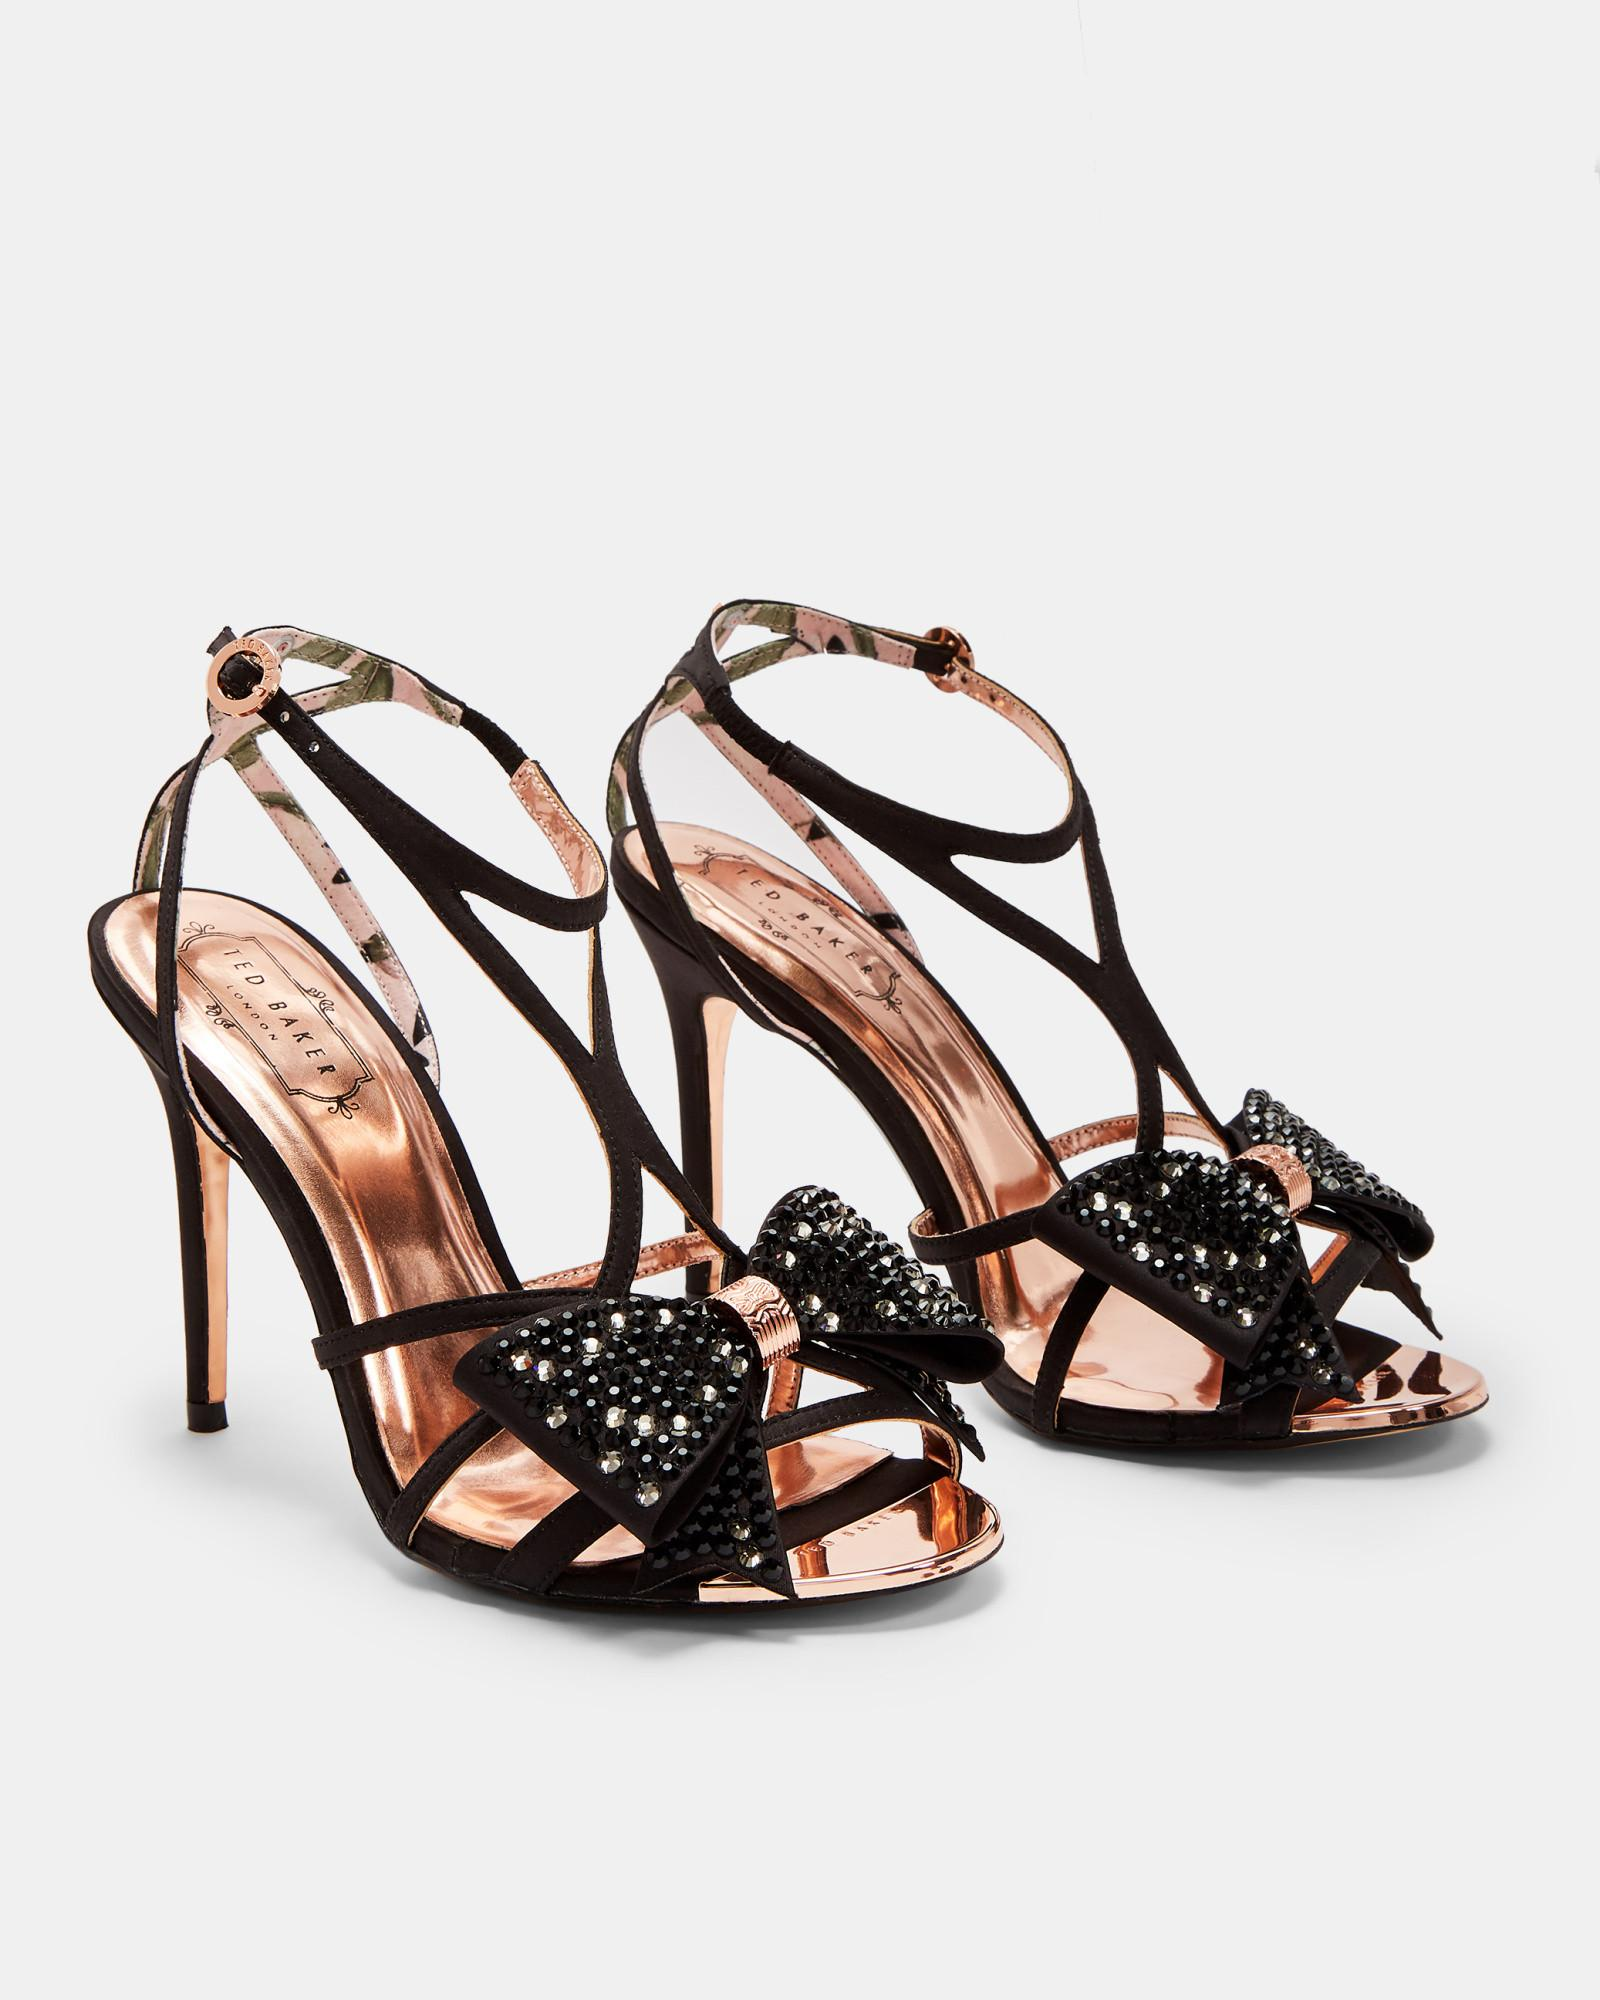 5443f2f785d Lyst - Ted Baker Bow Detail Strappy Sandals in Black